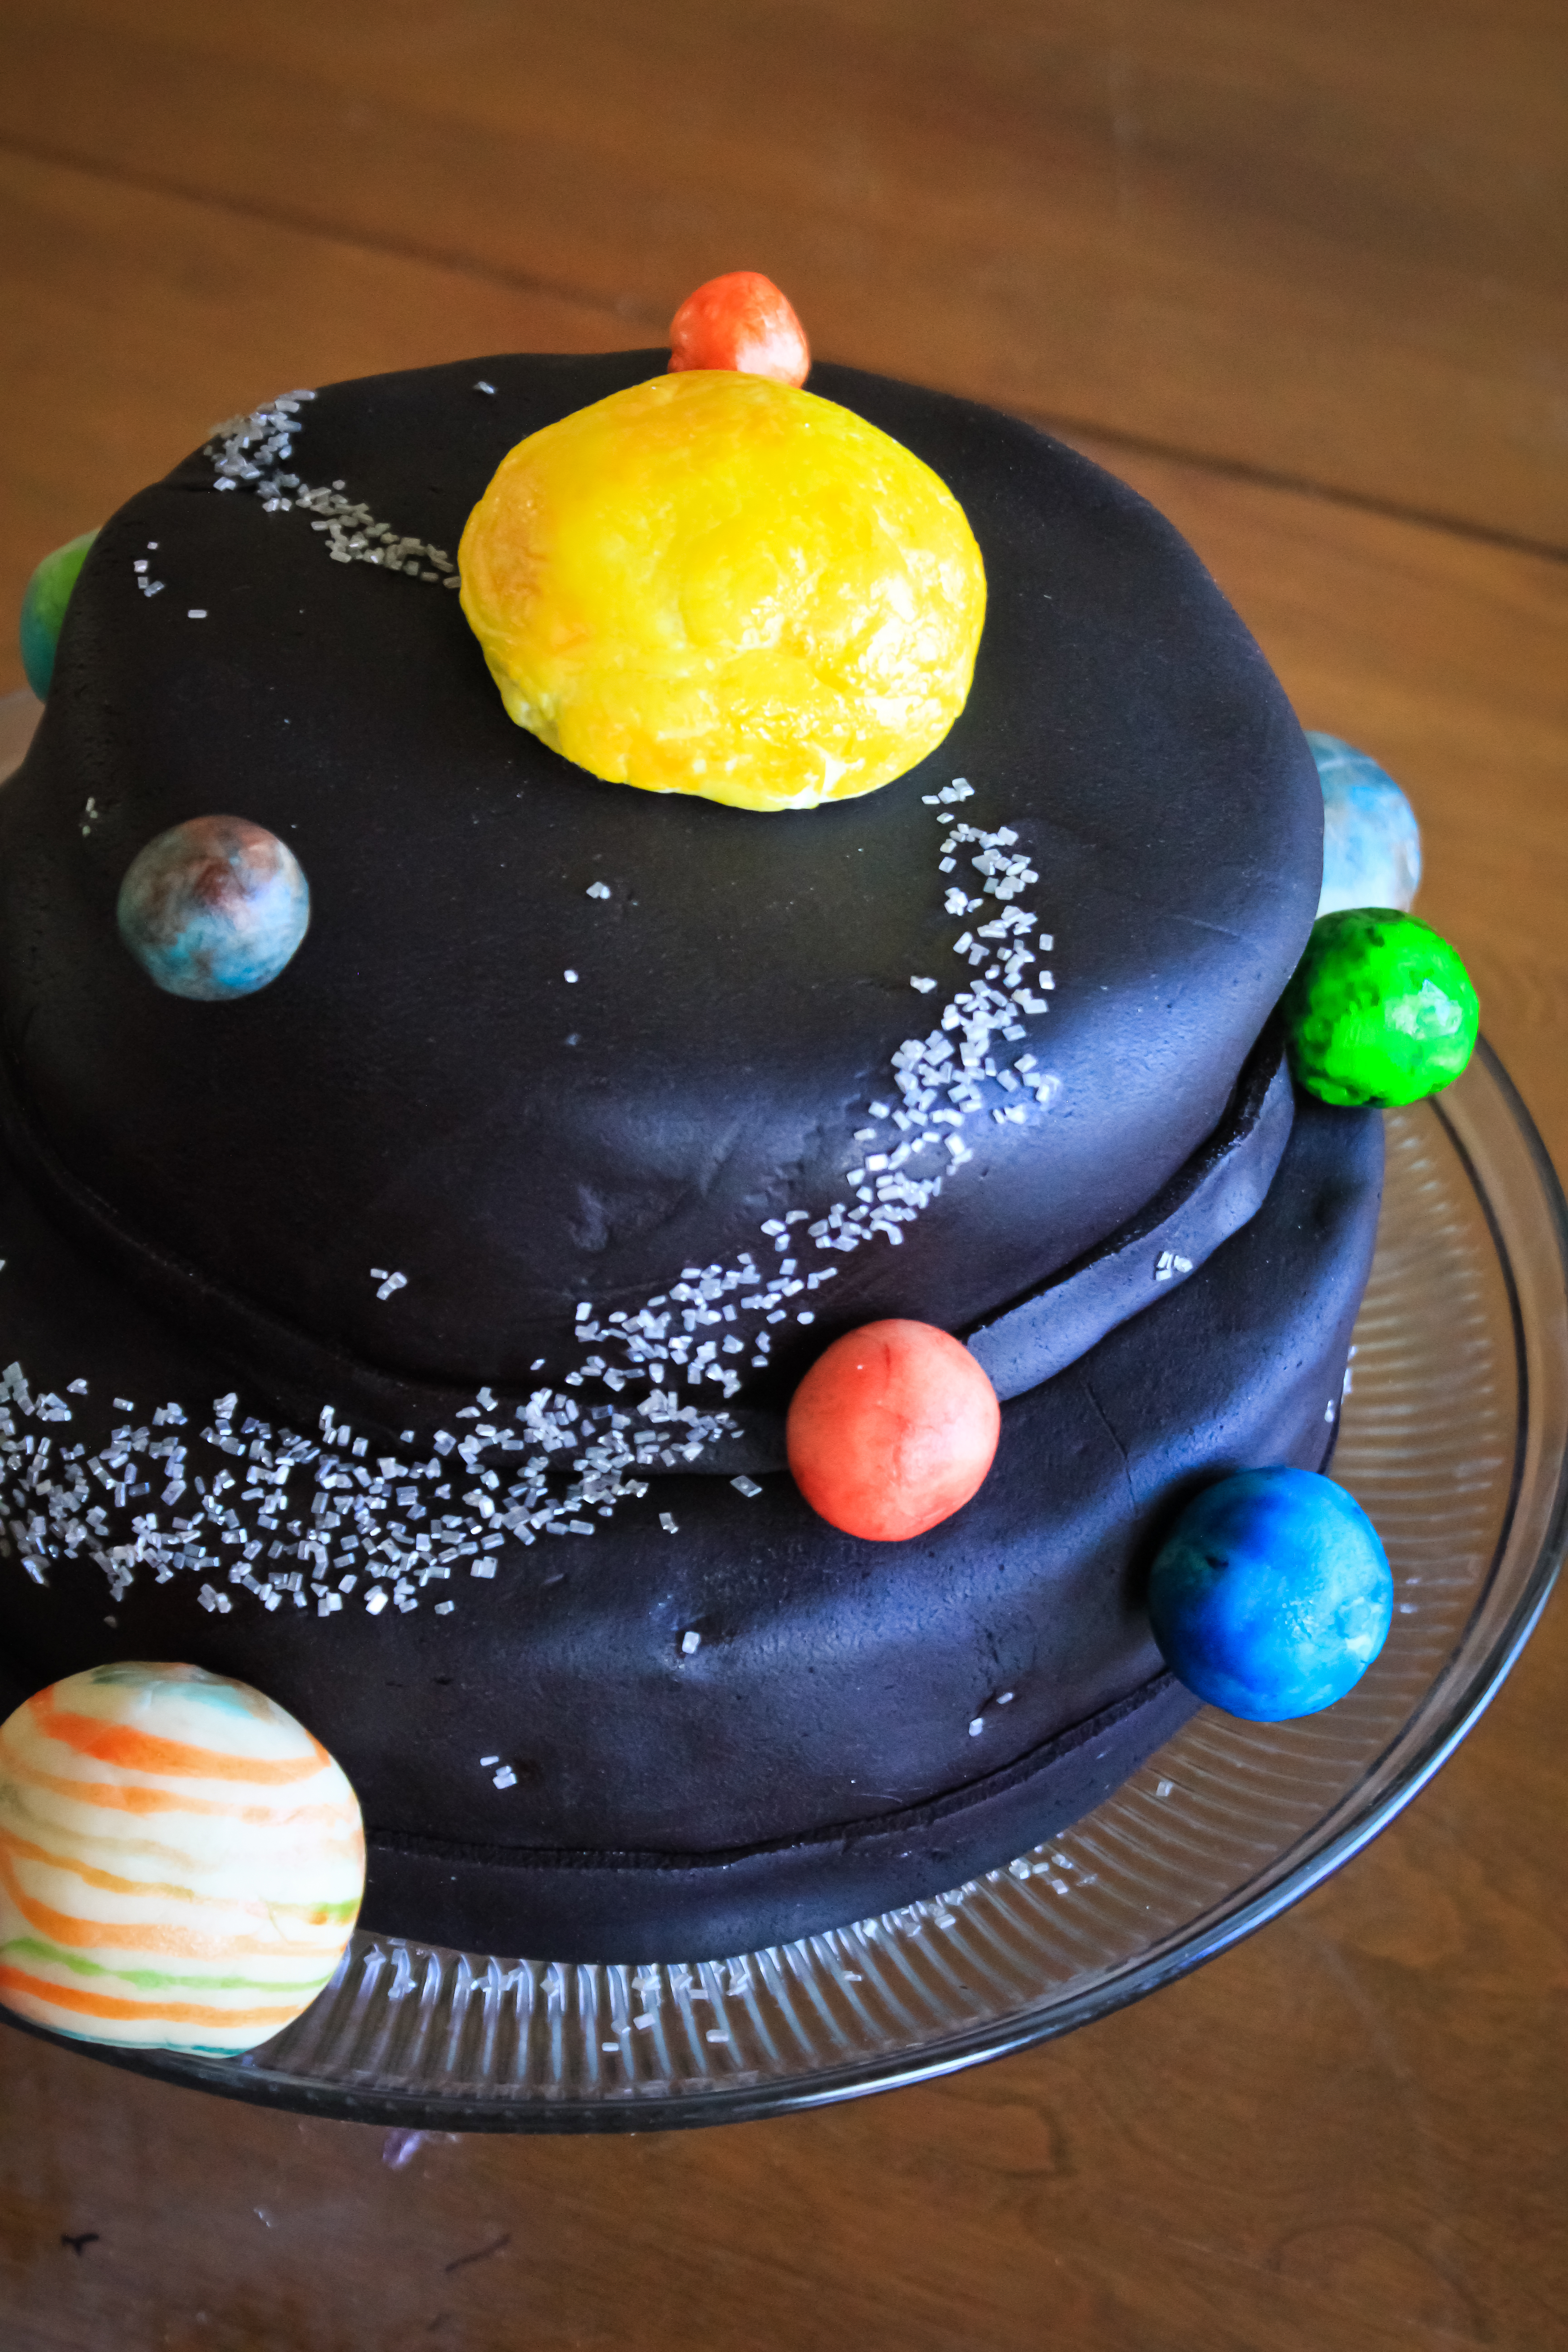 Cake Decorating Ideas Solar System : Solar System Cake Recipes - Pics about space